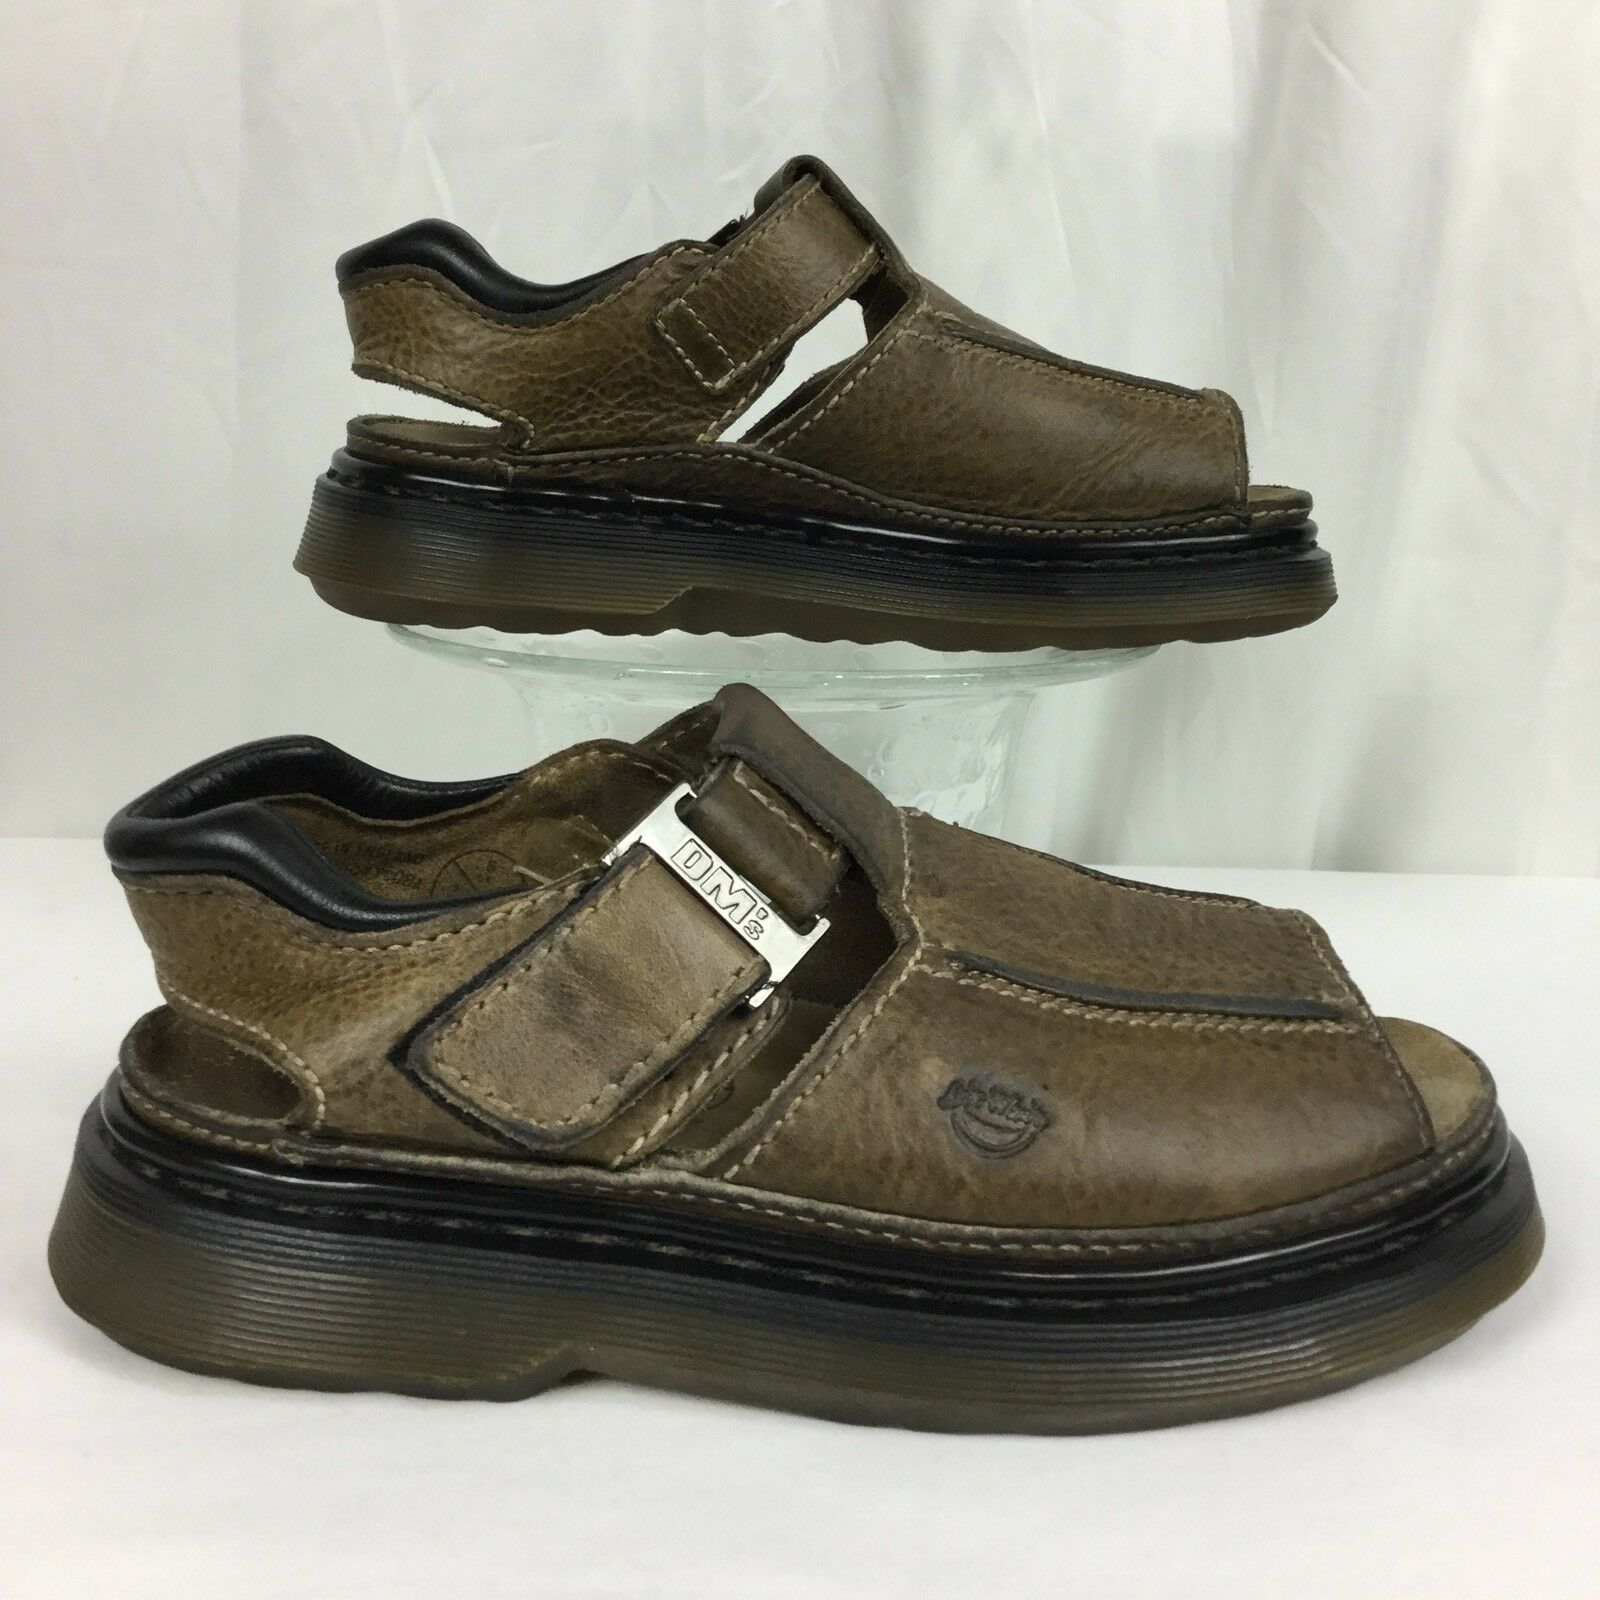 DR MARTENS ENGLAND Air Wair gaucho sandal slide shoe women's 7   uk5 eu38 m6